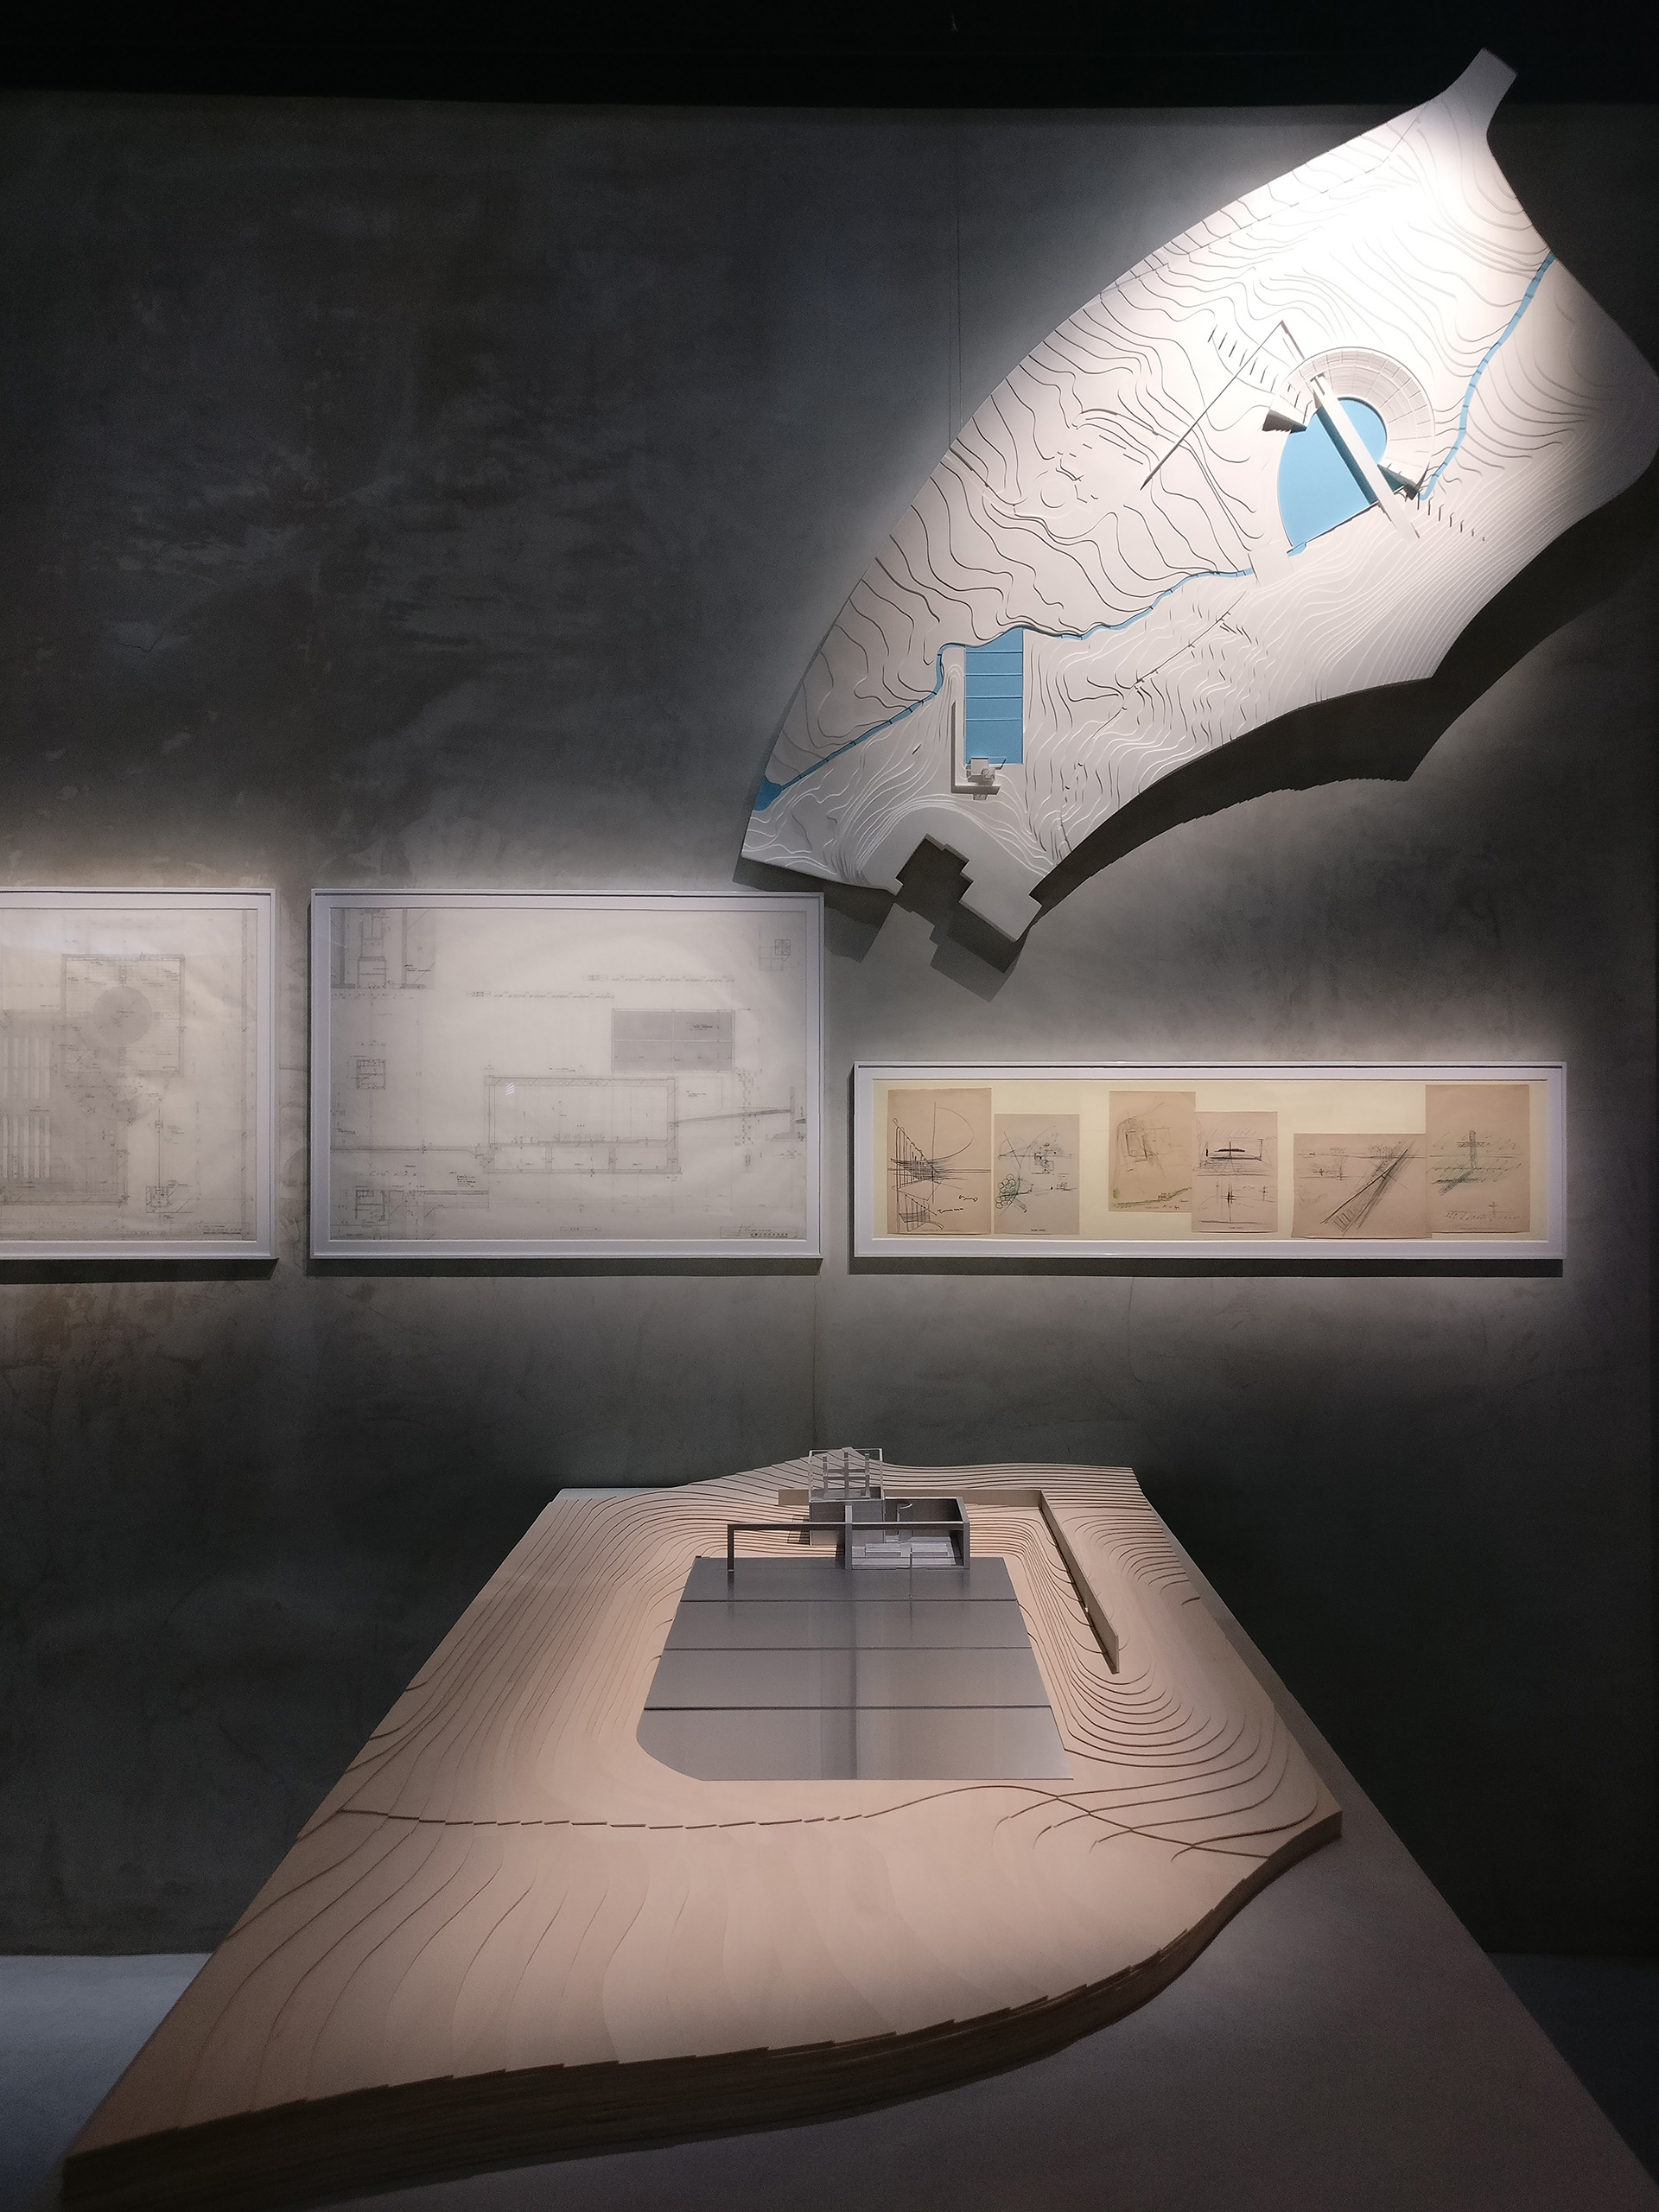 Drawings, sketches and model of the Chapel on the water aka Water church in Hokkaido Shimukappu Village, Japan| The Challenge| Tadao Ando| Armani/Silos| STIR